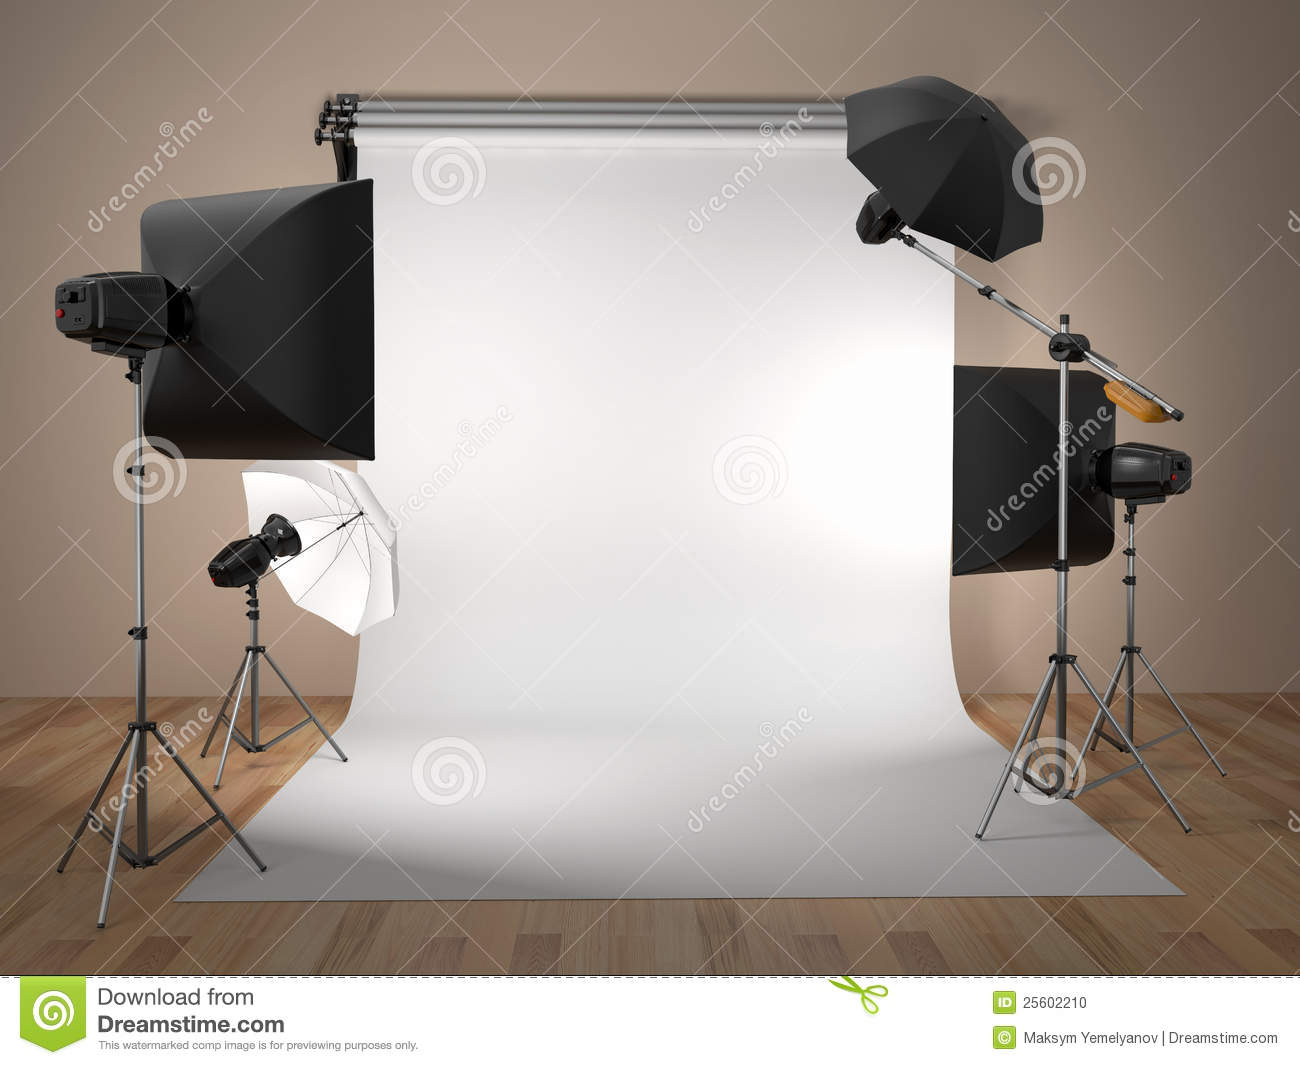 Mat riel de studio de photo l 39 espace pour le texte photo stock image 25602210 - Optimaliseer de studio ...